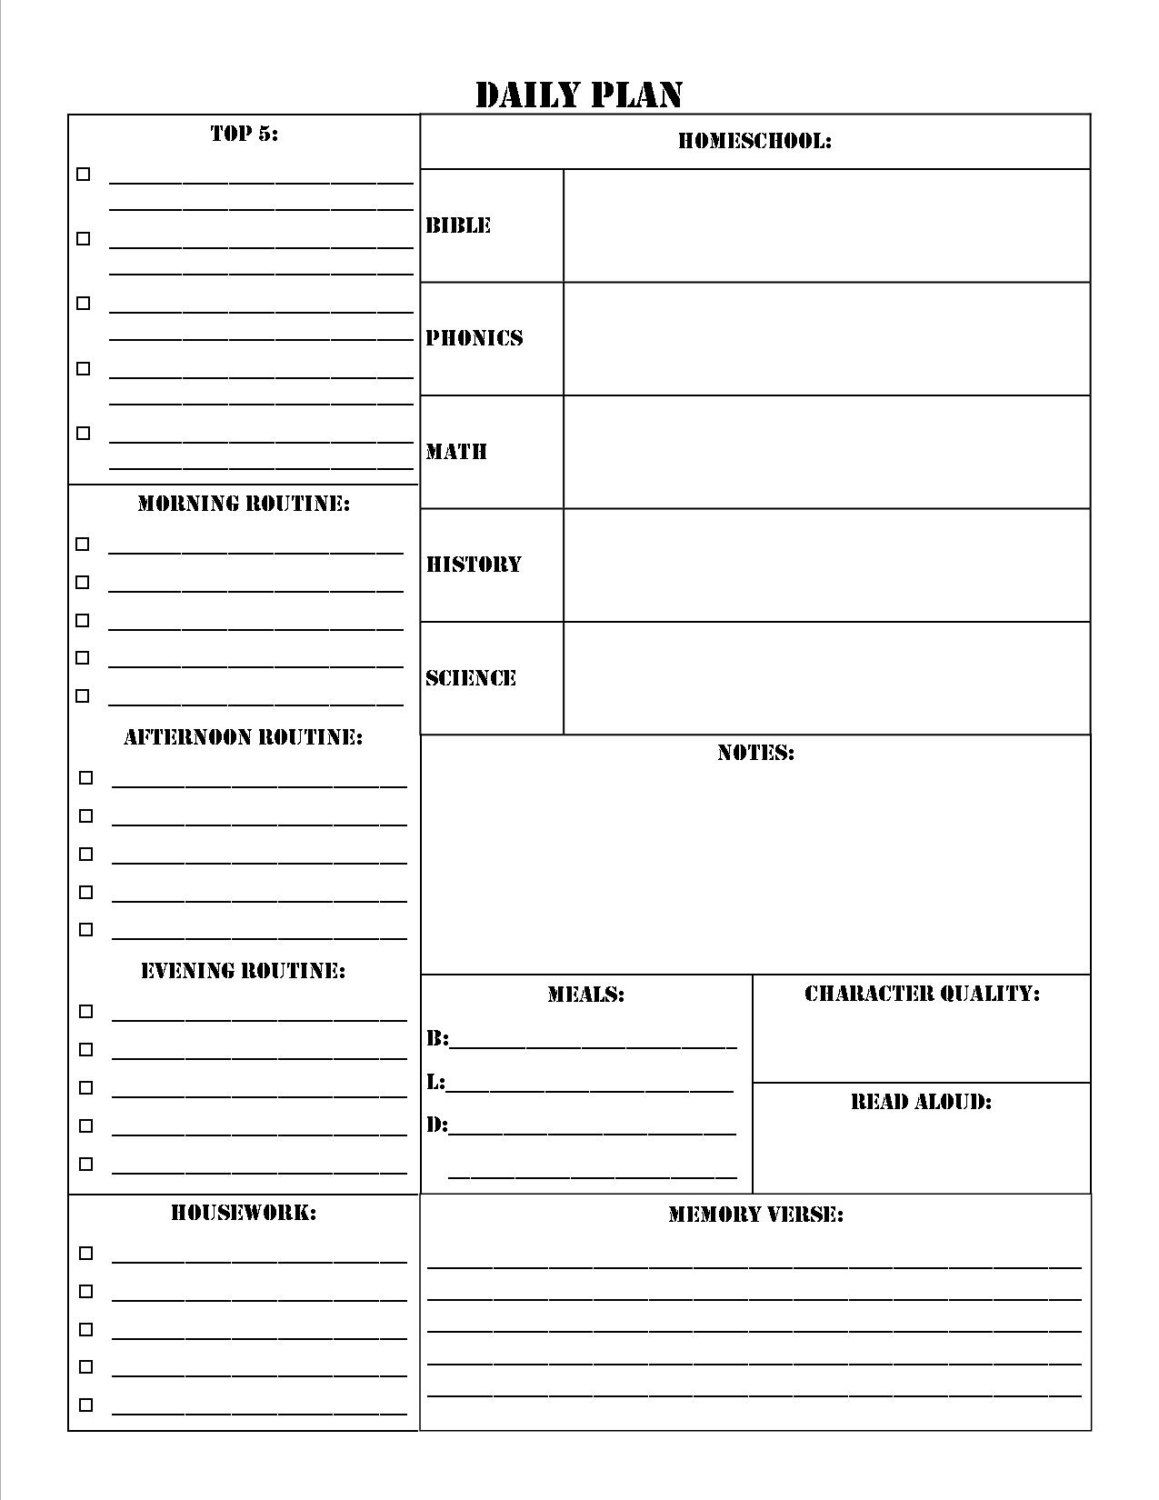 Homeschool Planner Worksheet